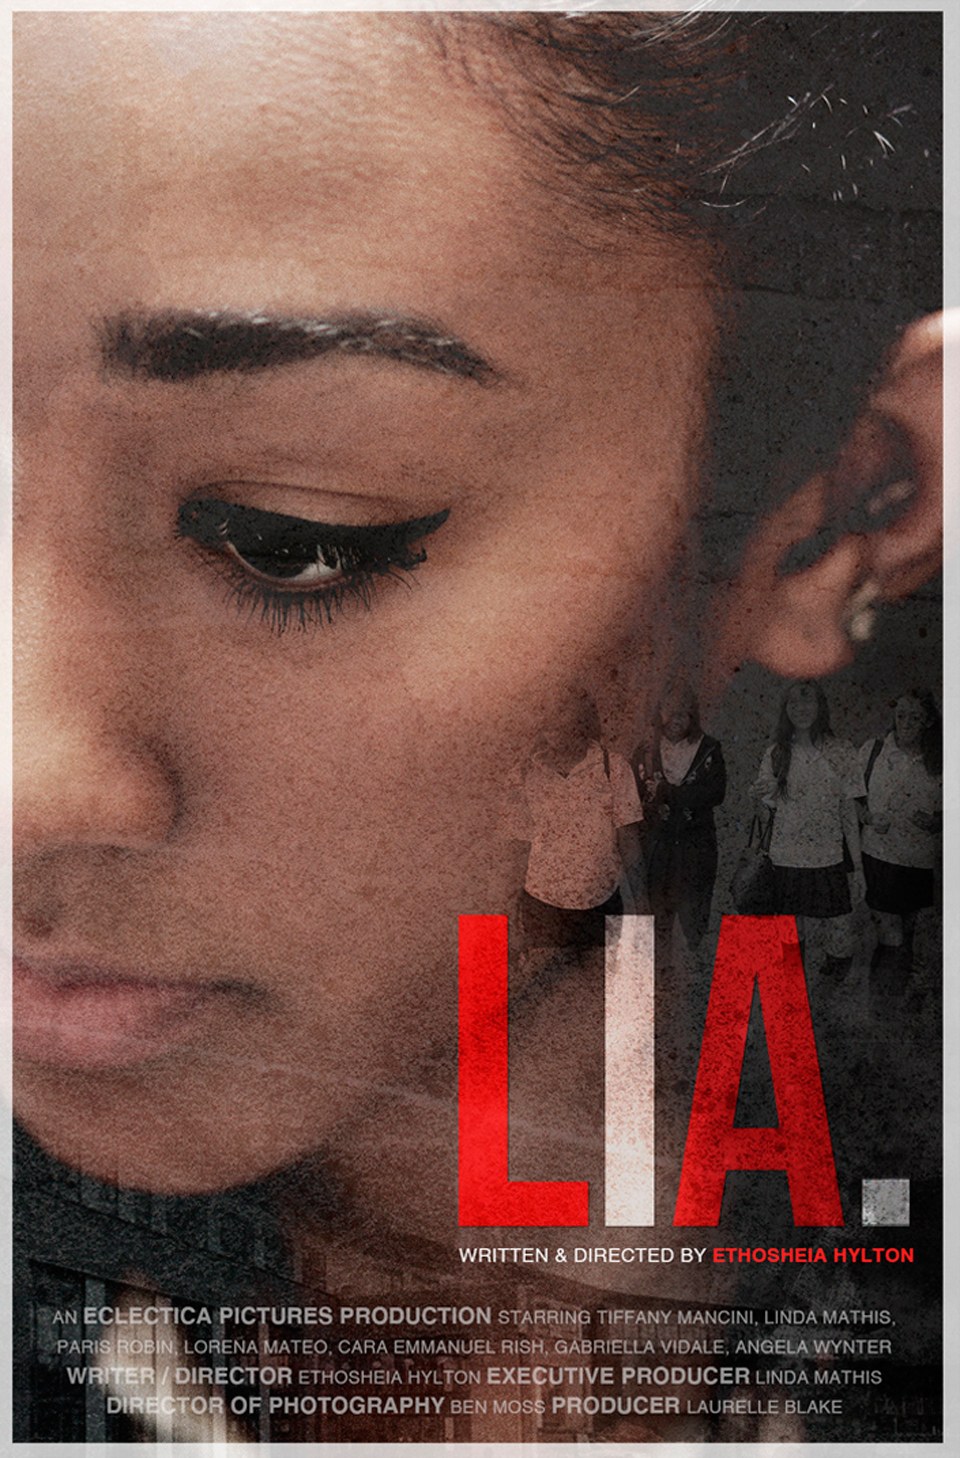 LIA_poster_work